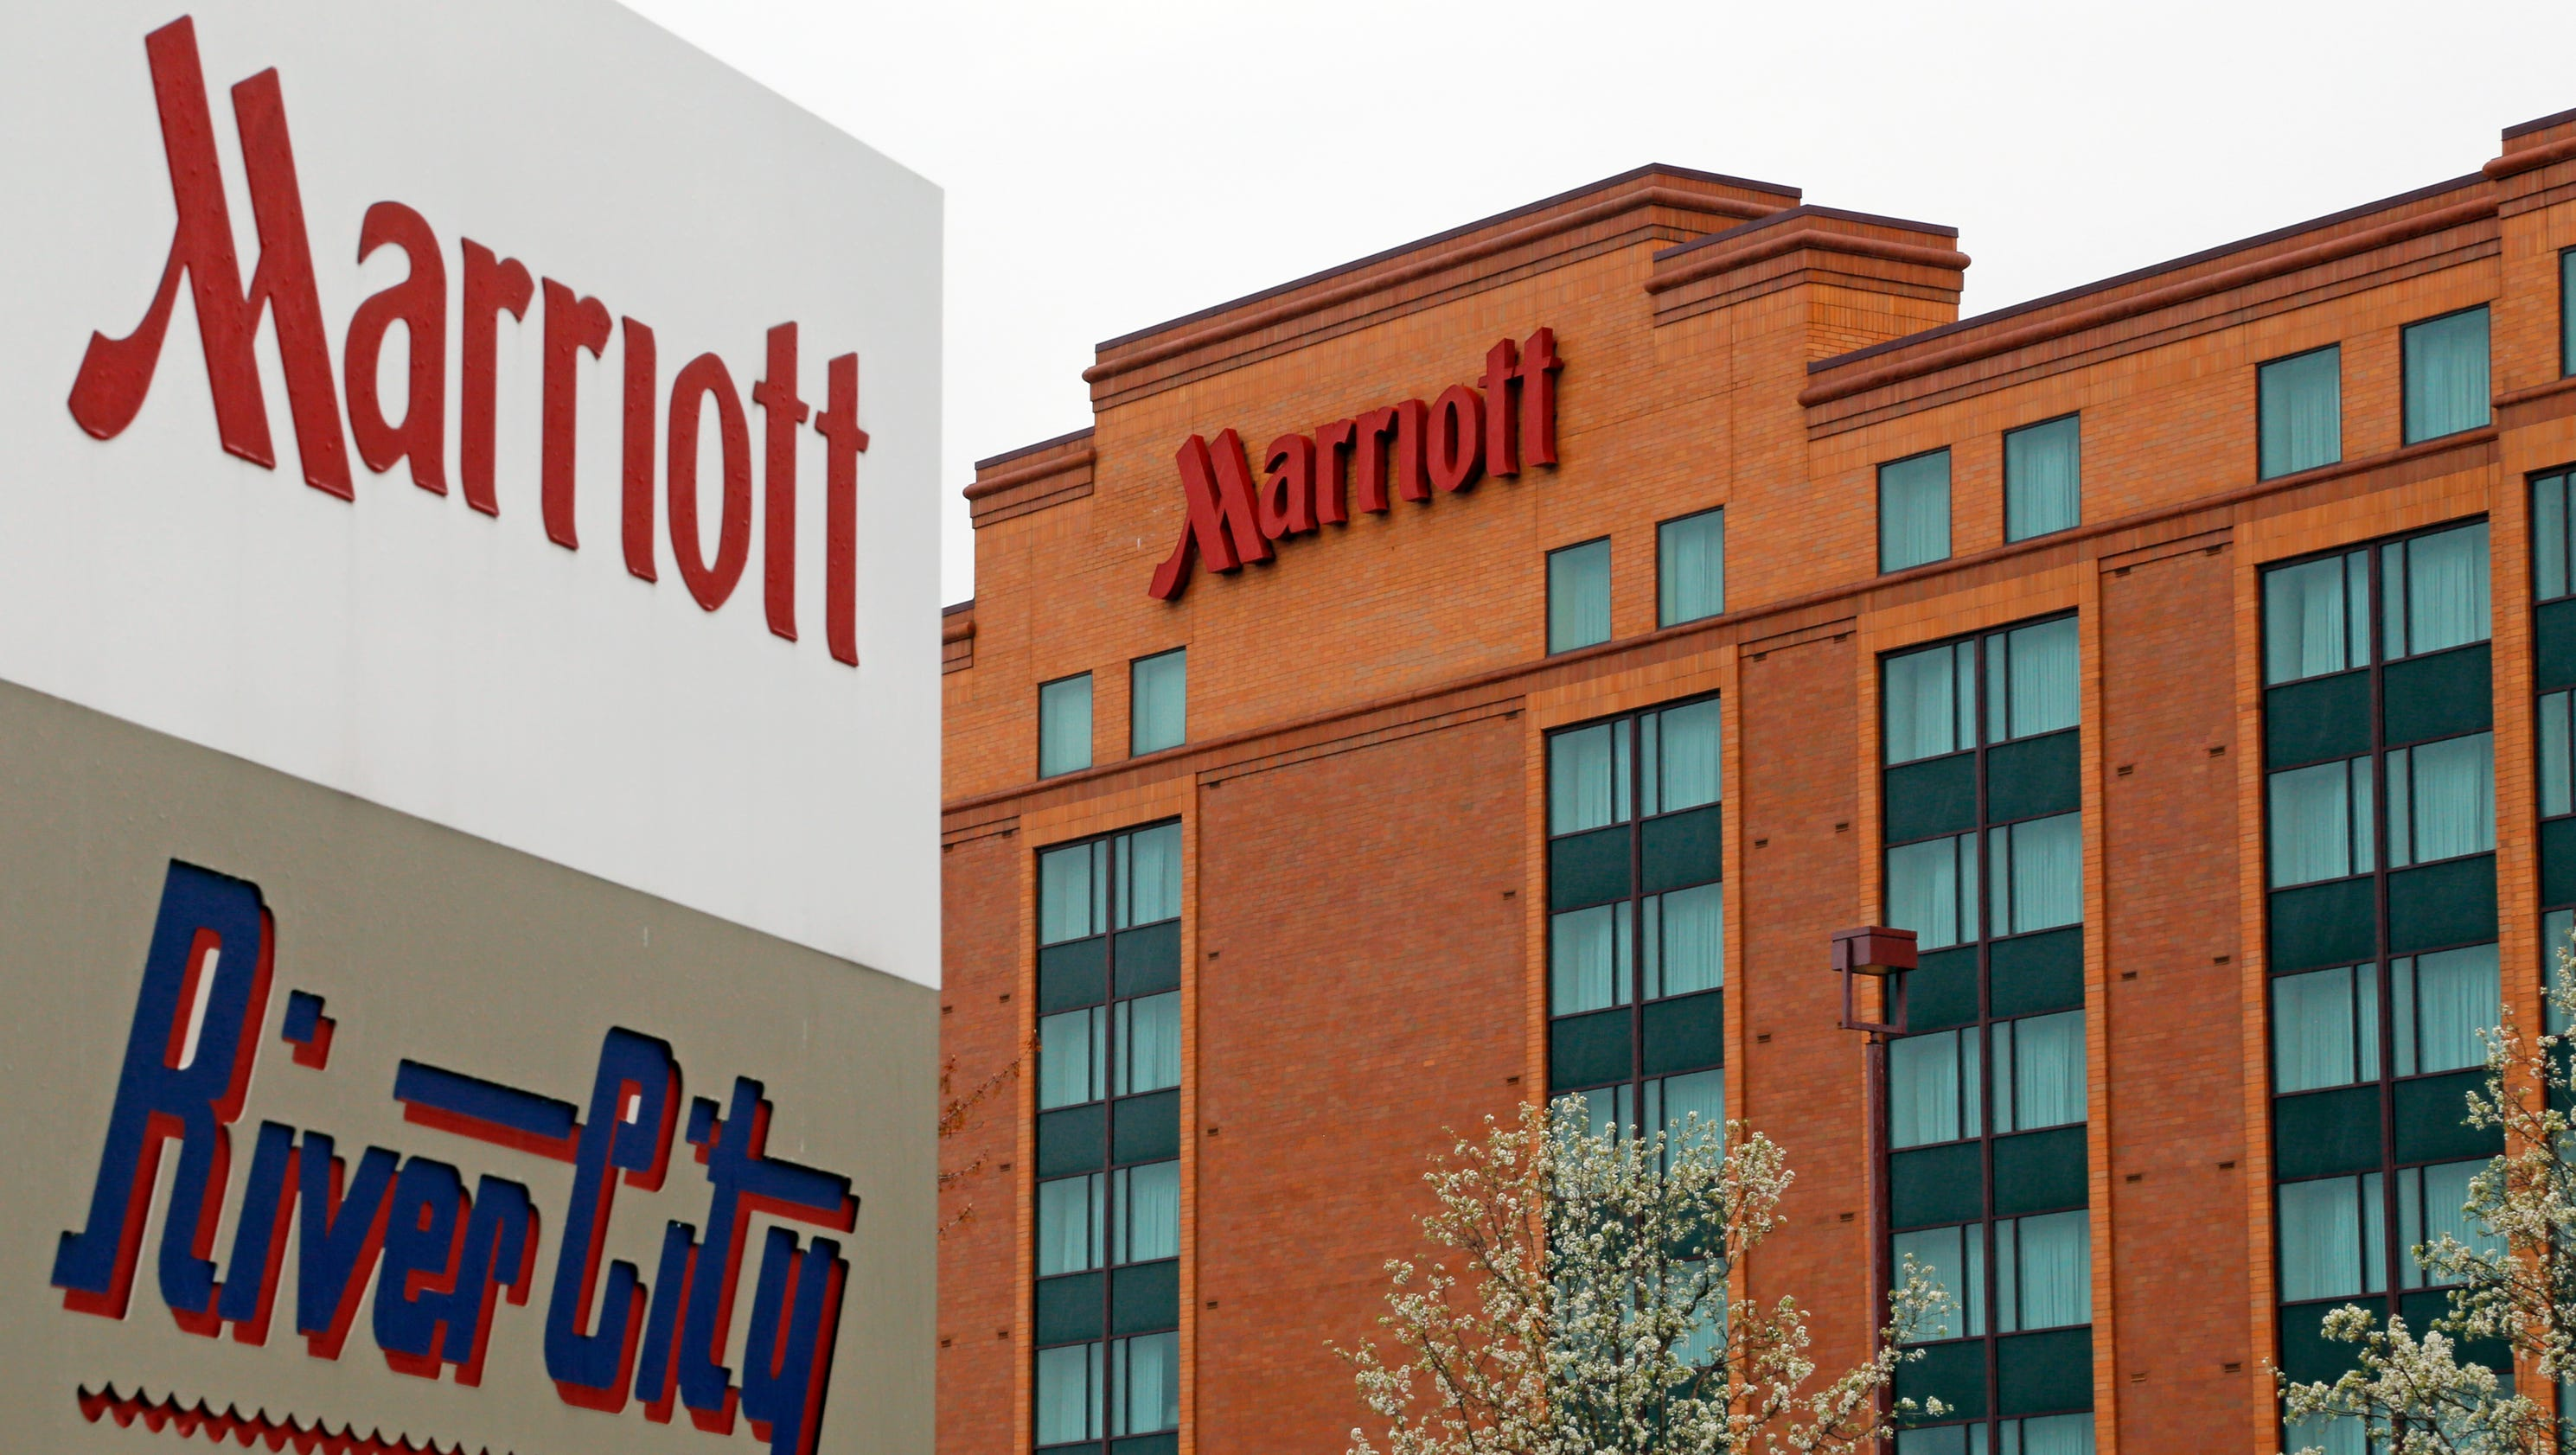 Marriott international to buy starwood hotels for 12 2b for Hotel international